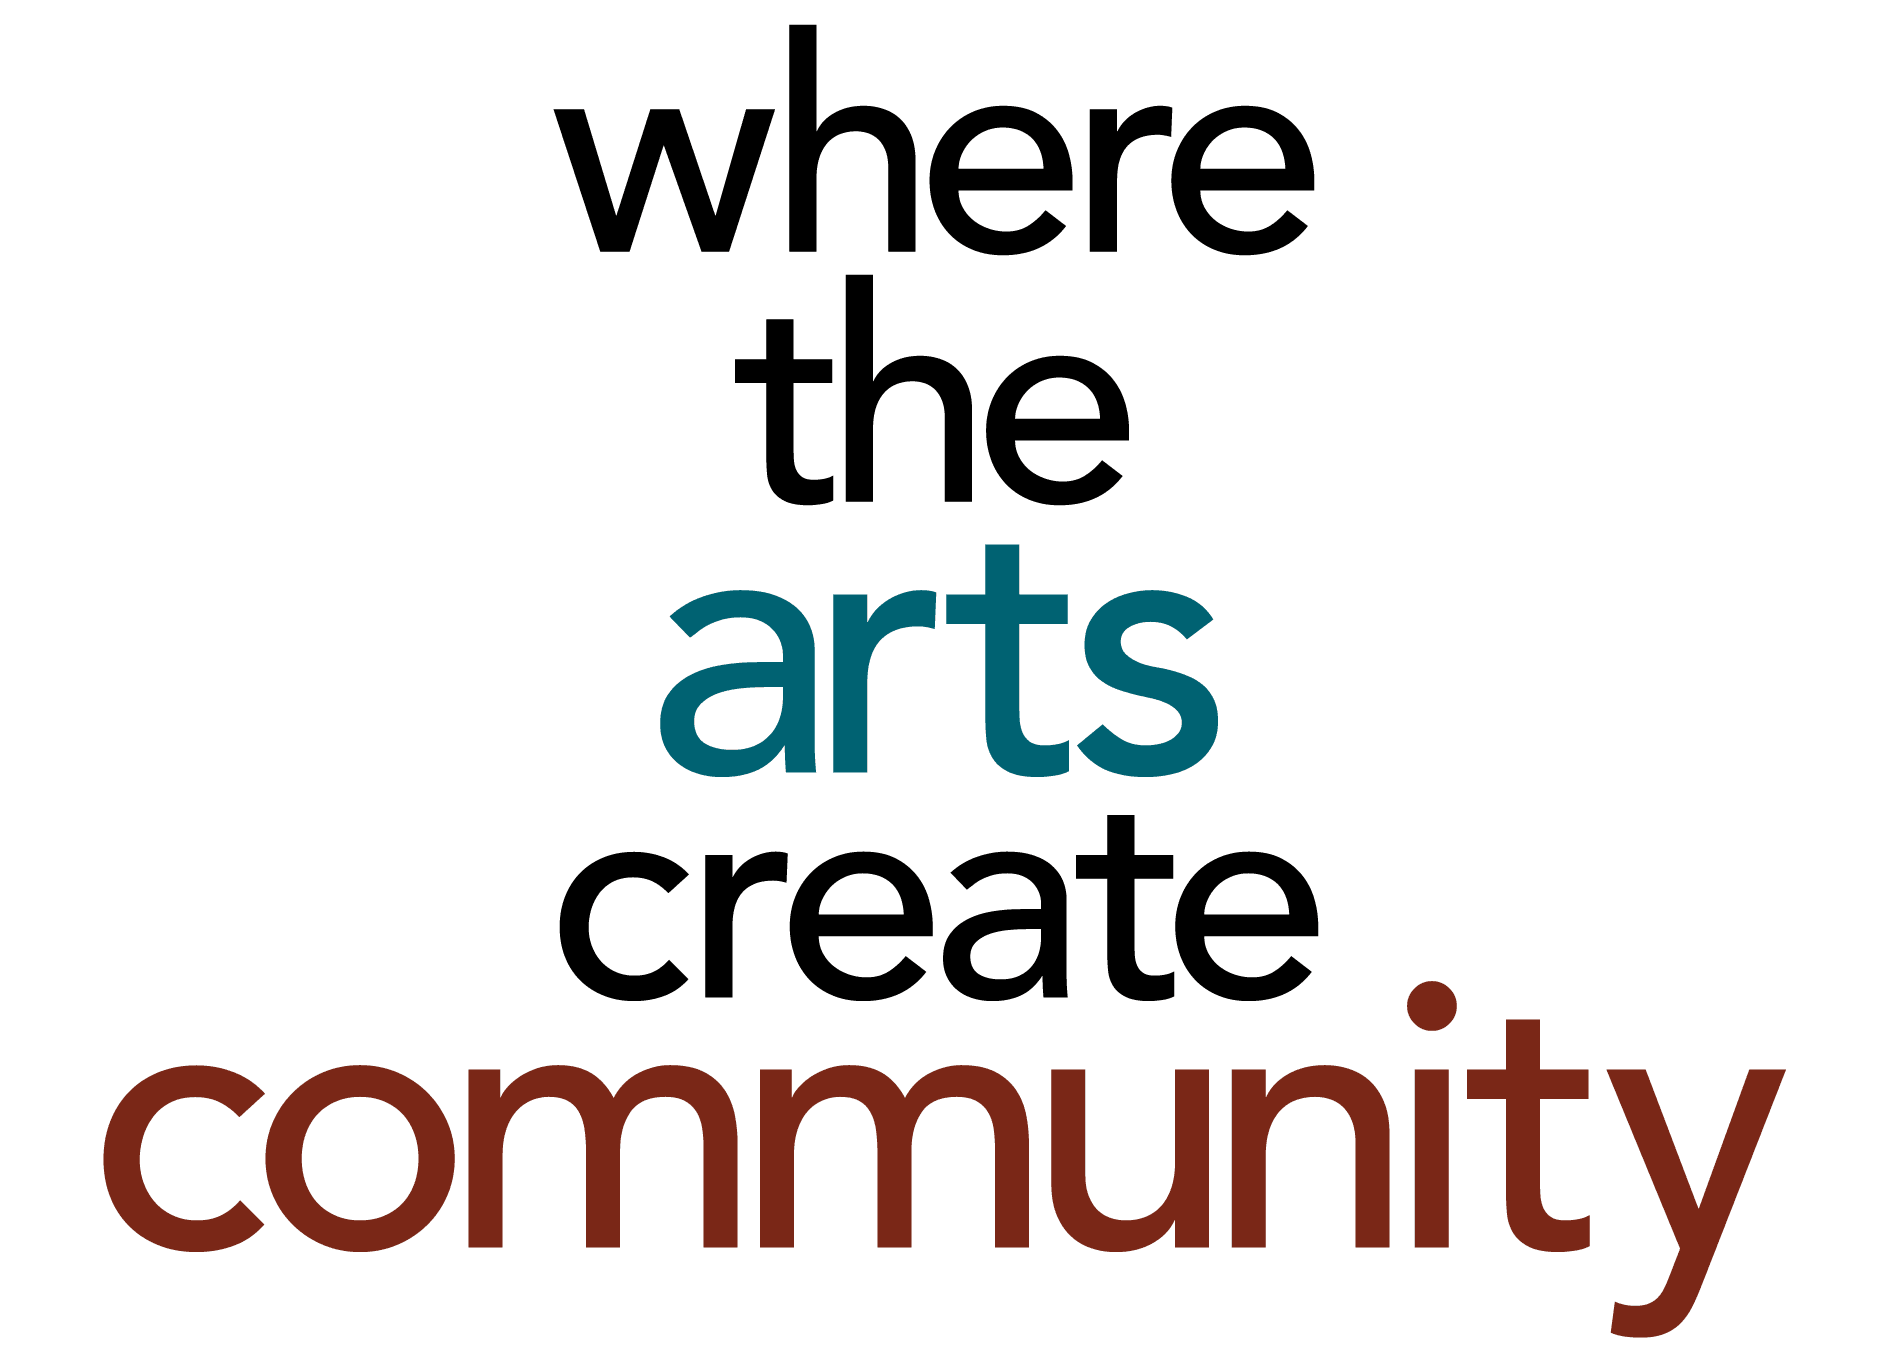 where-the-arts-create-community